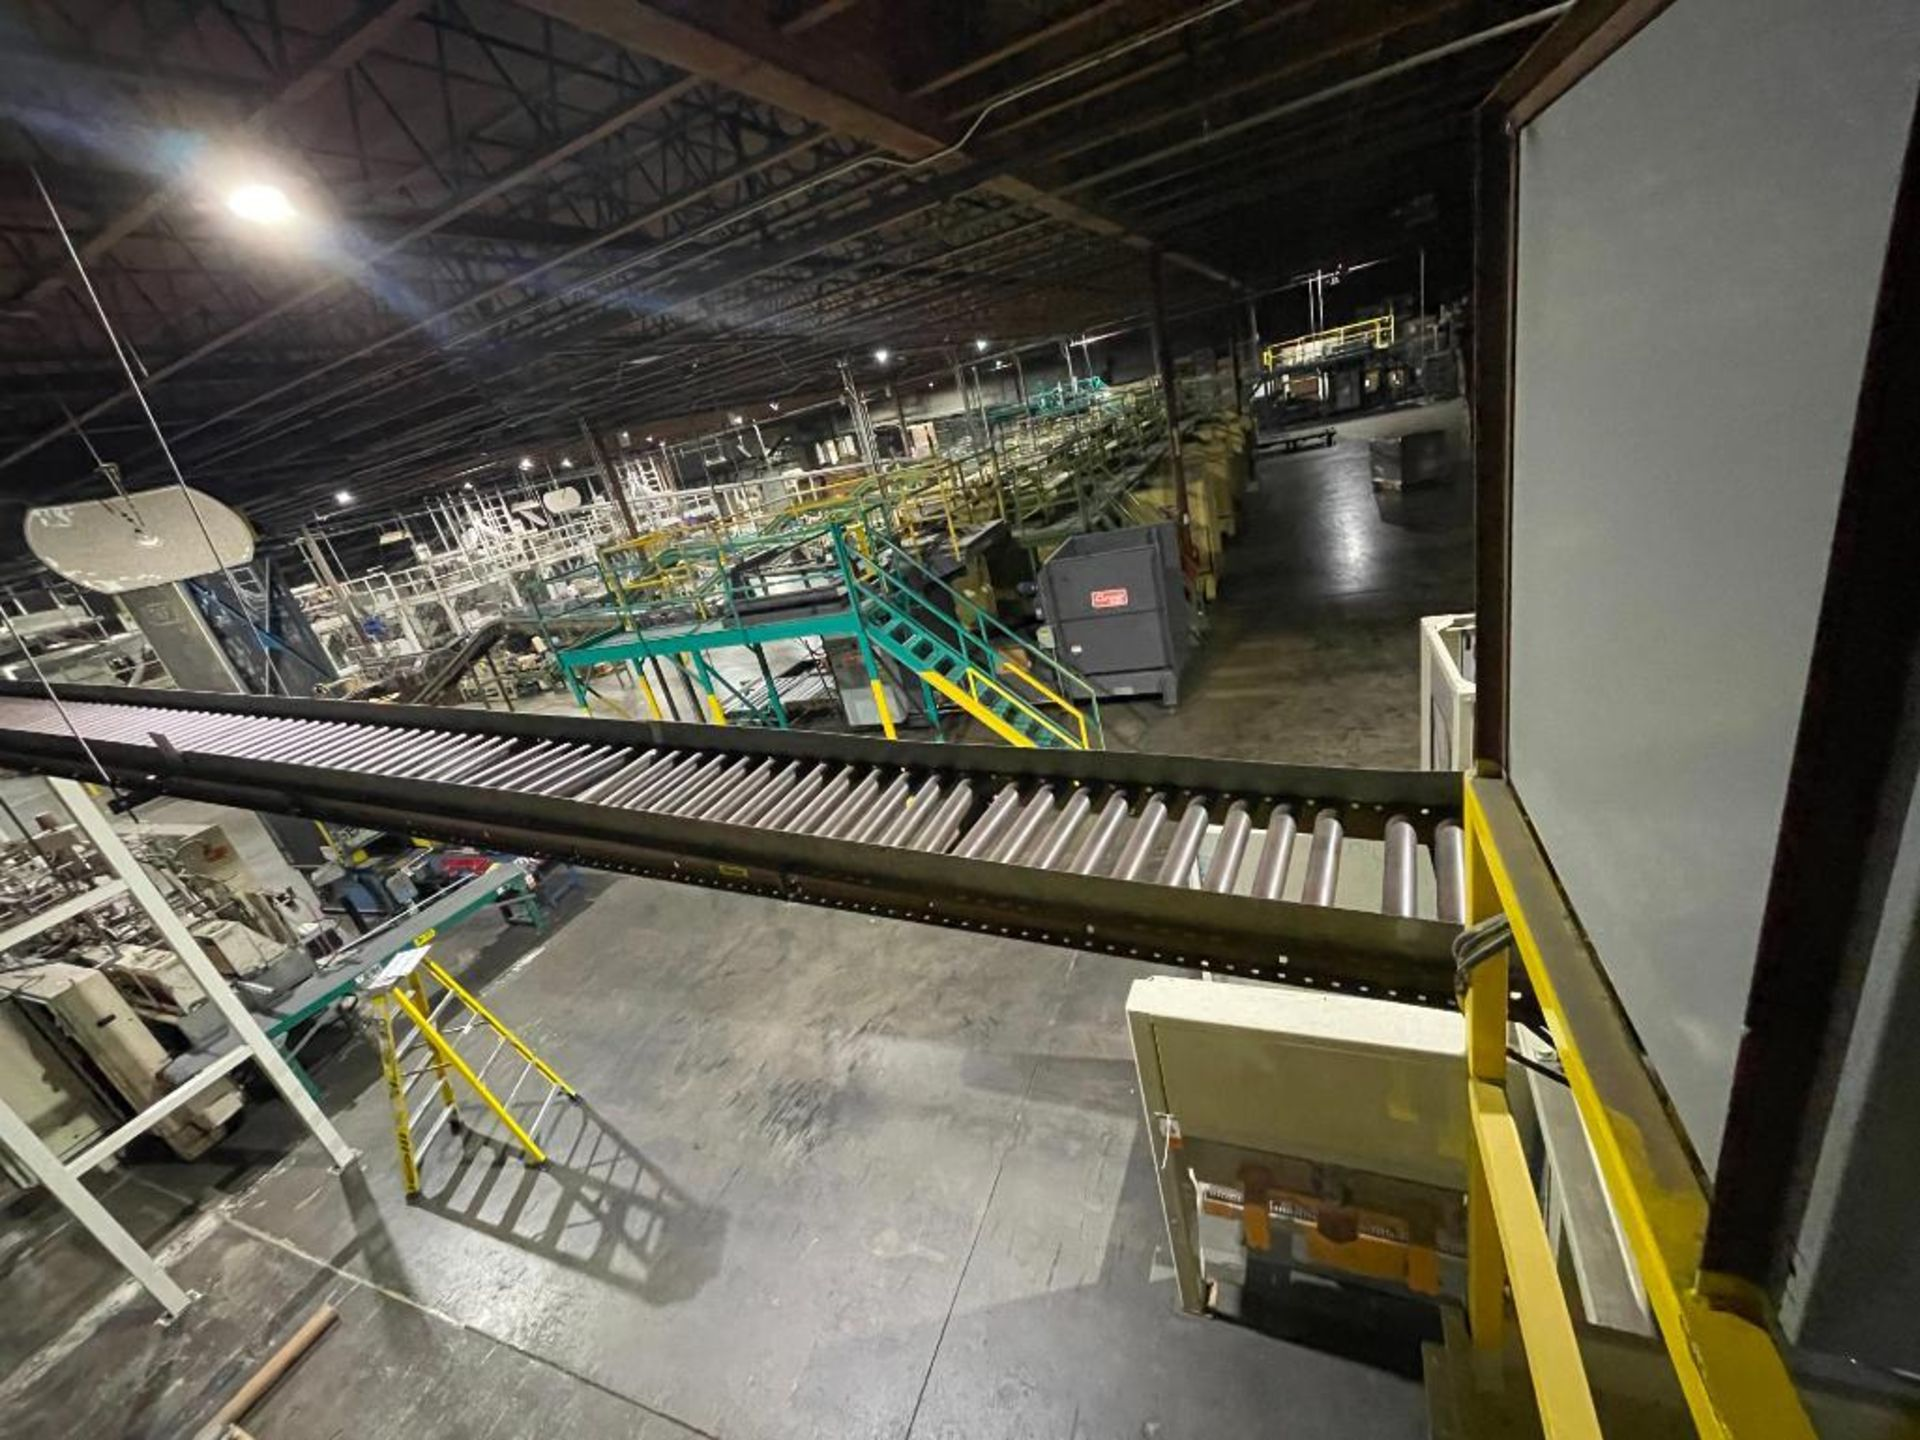 skate and roller gravity conveyor - Image 7 of 12